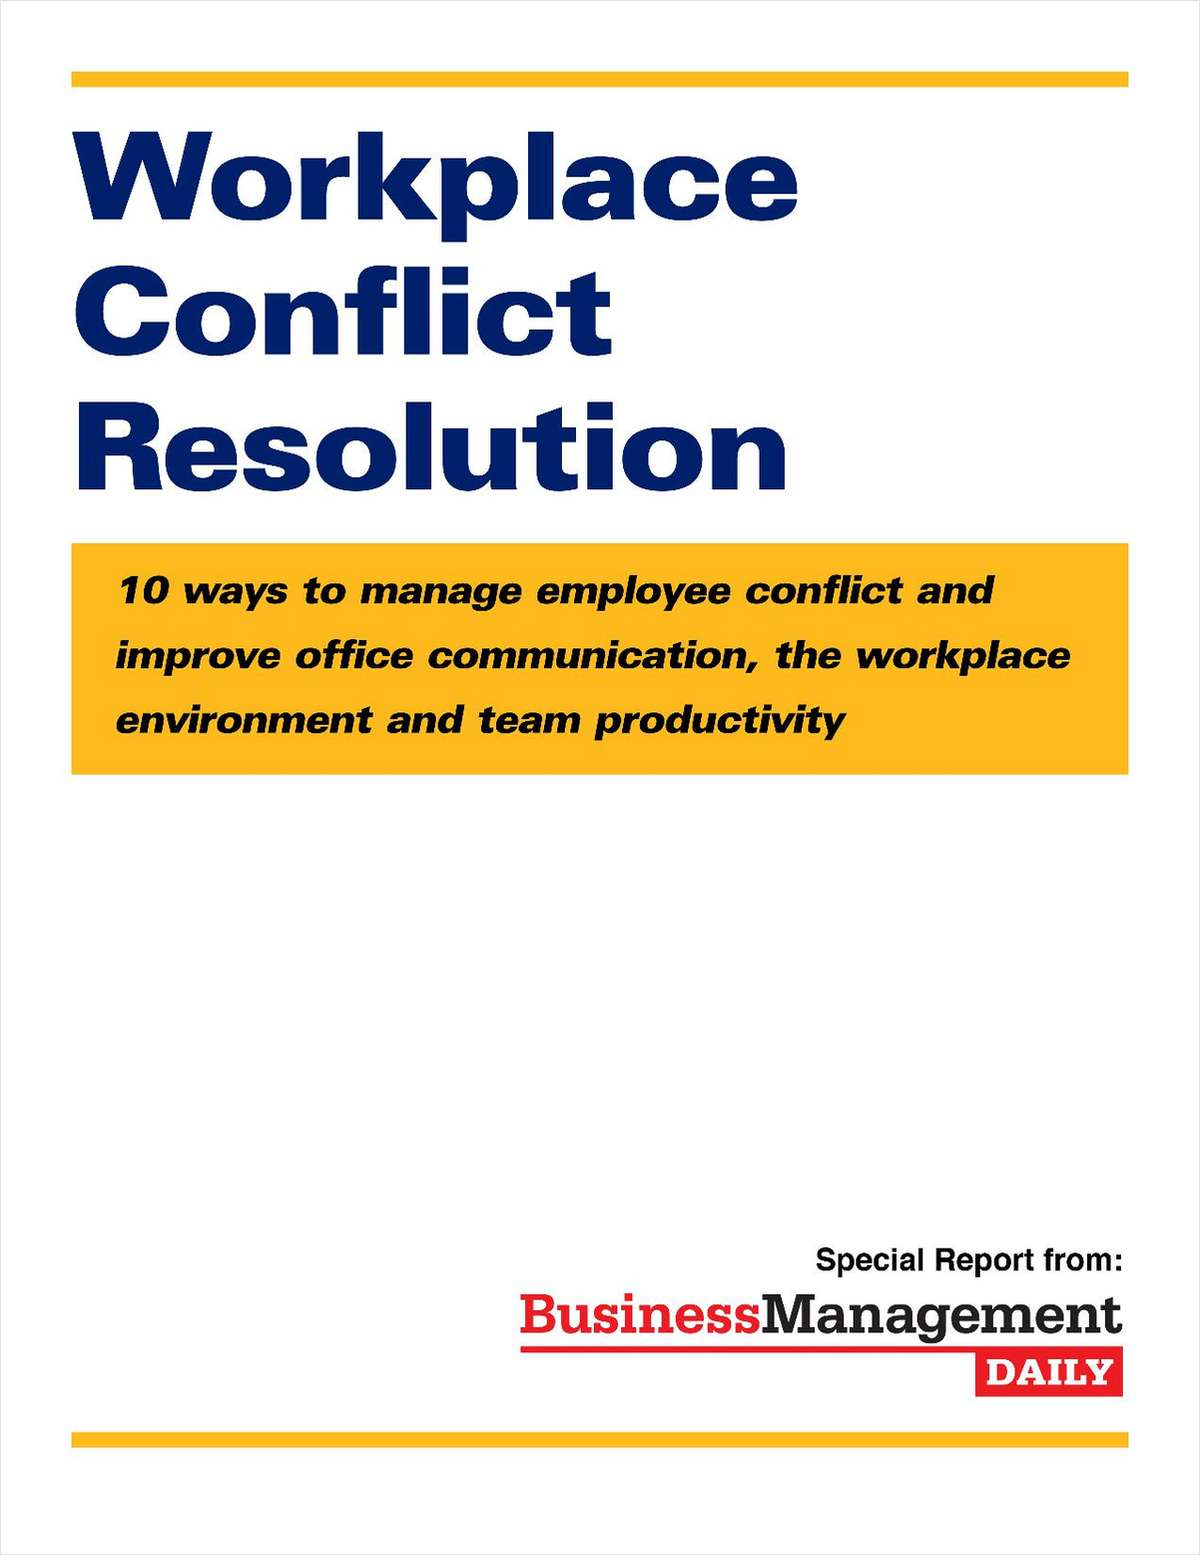 Workplace Conflict Resolution